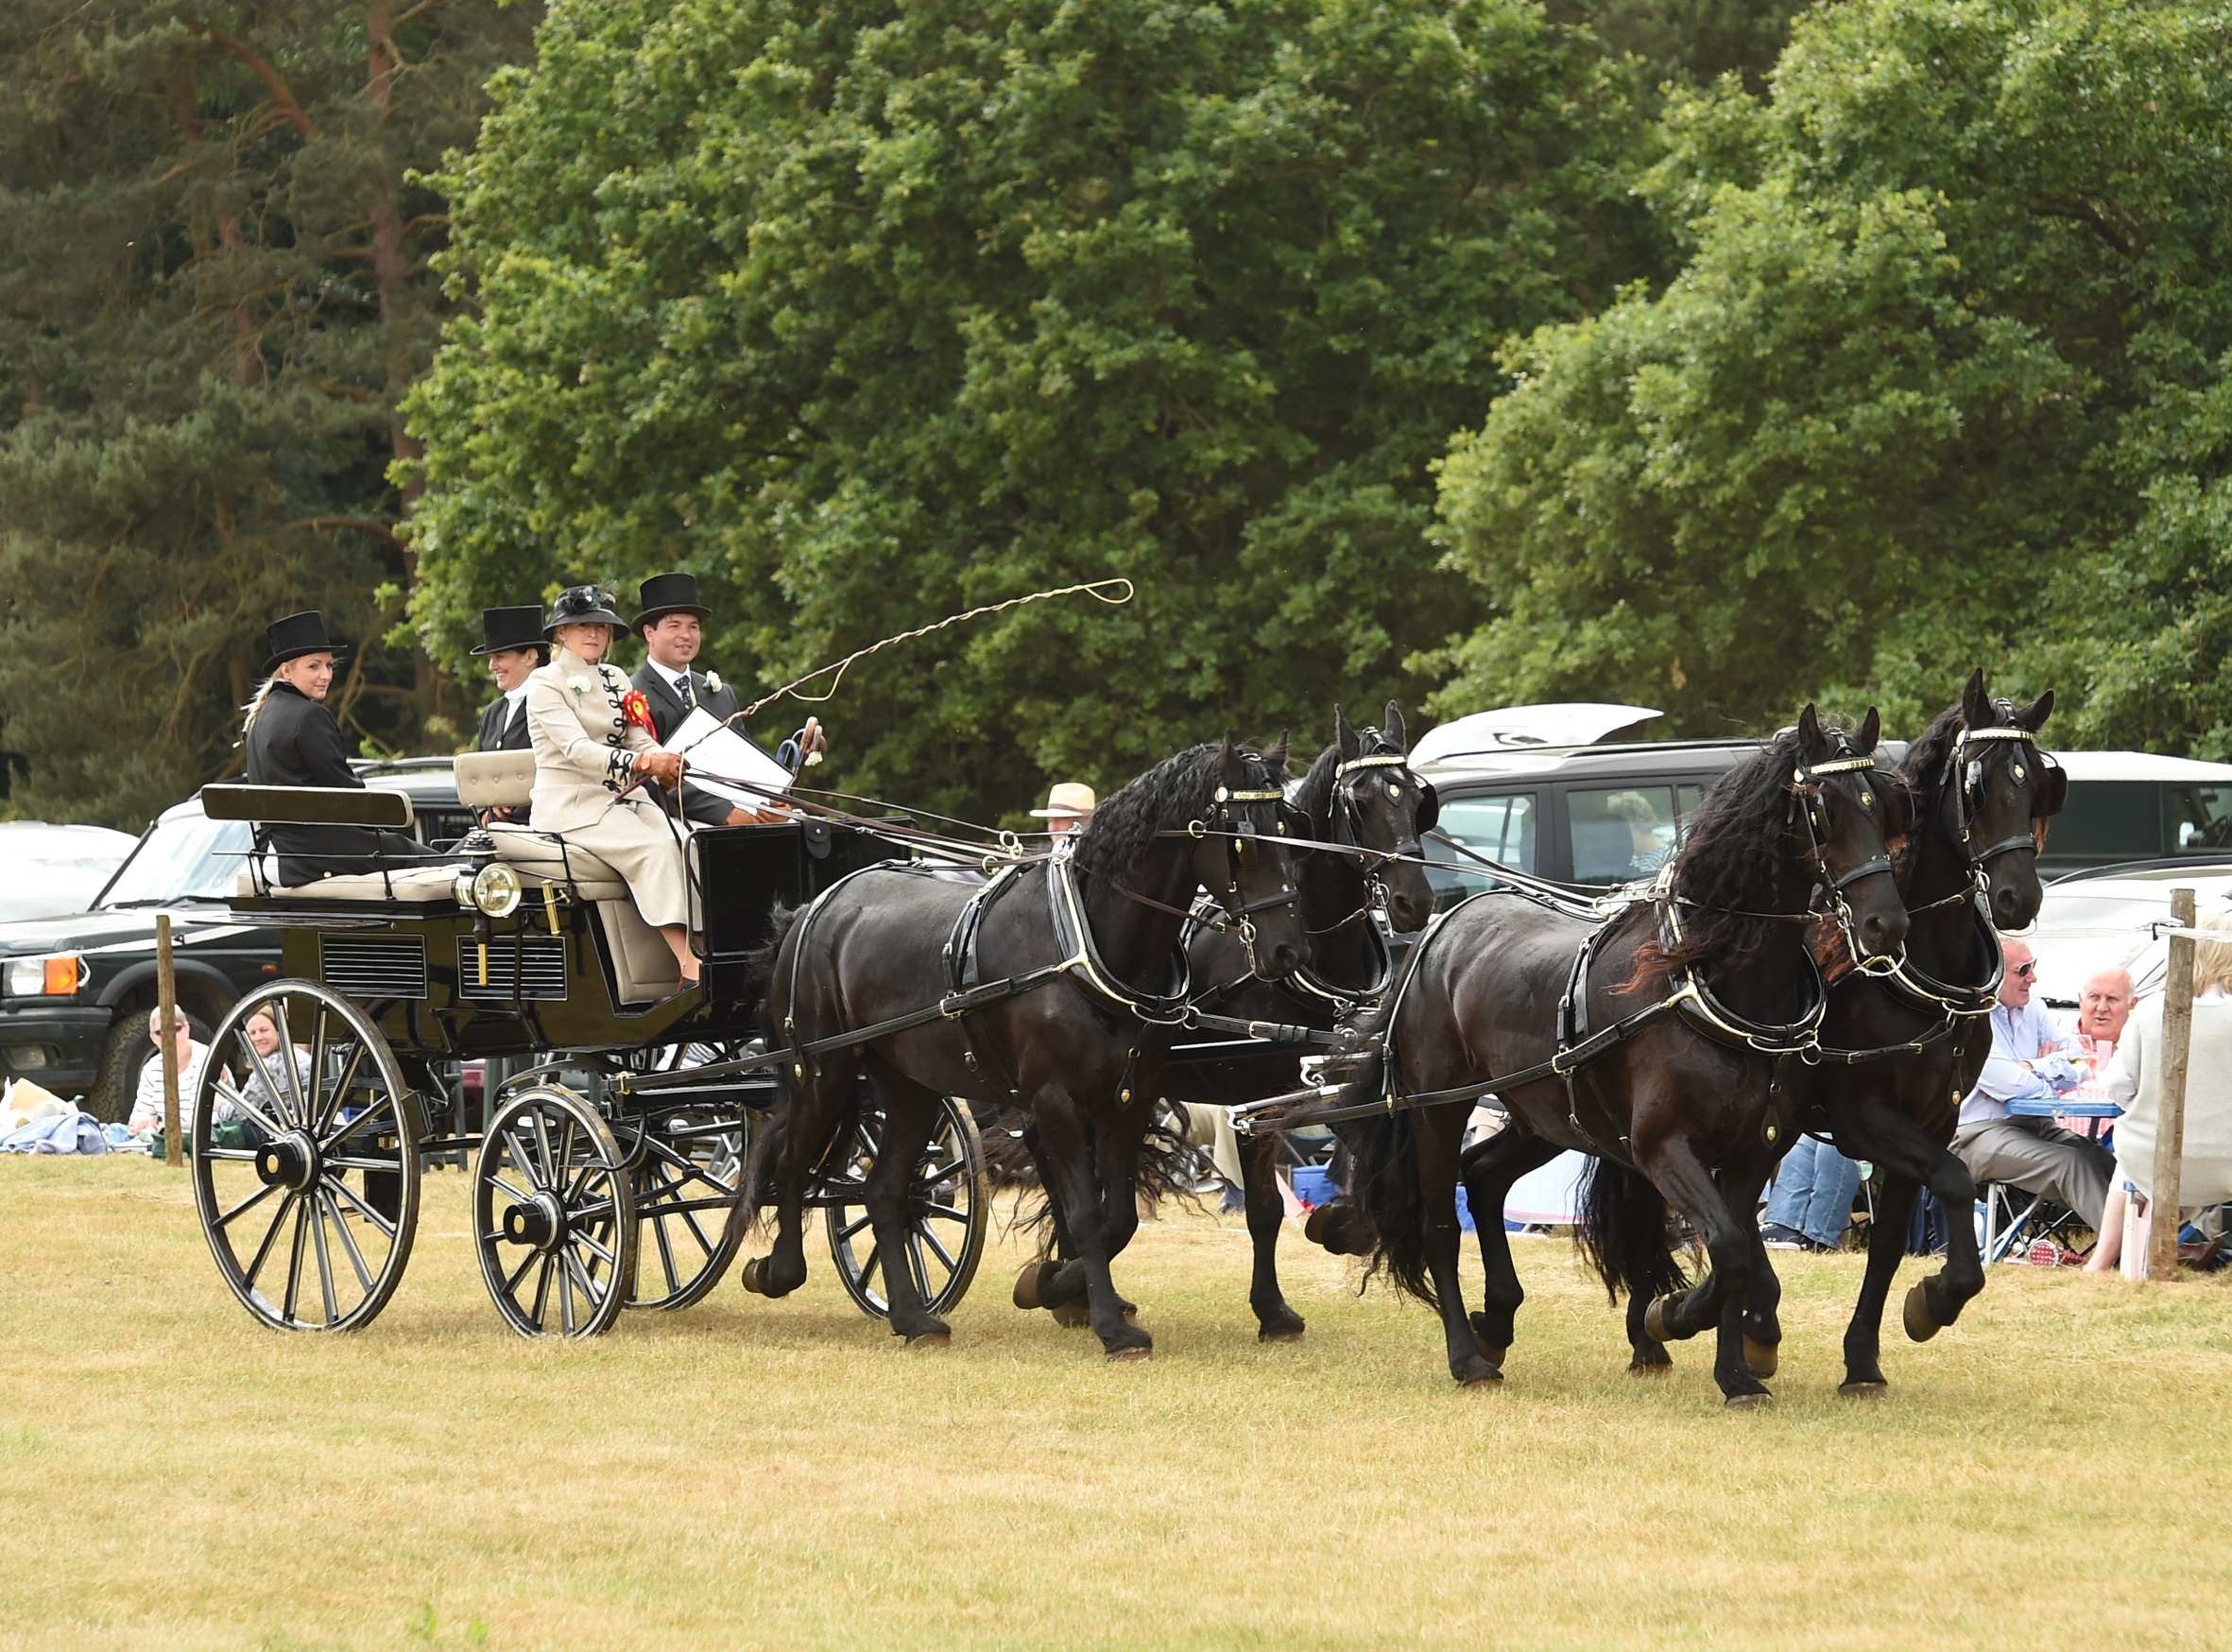 Worship Company of Wheelwrights Vintage Vehicles